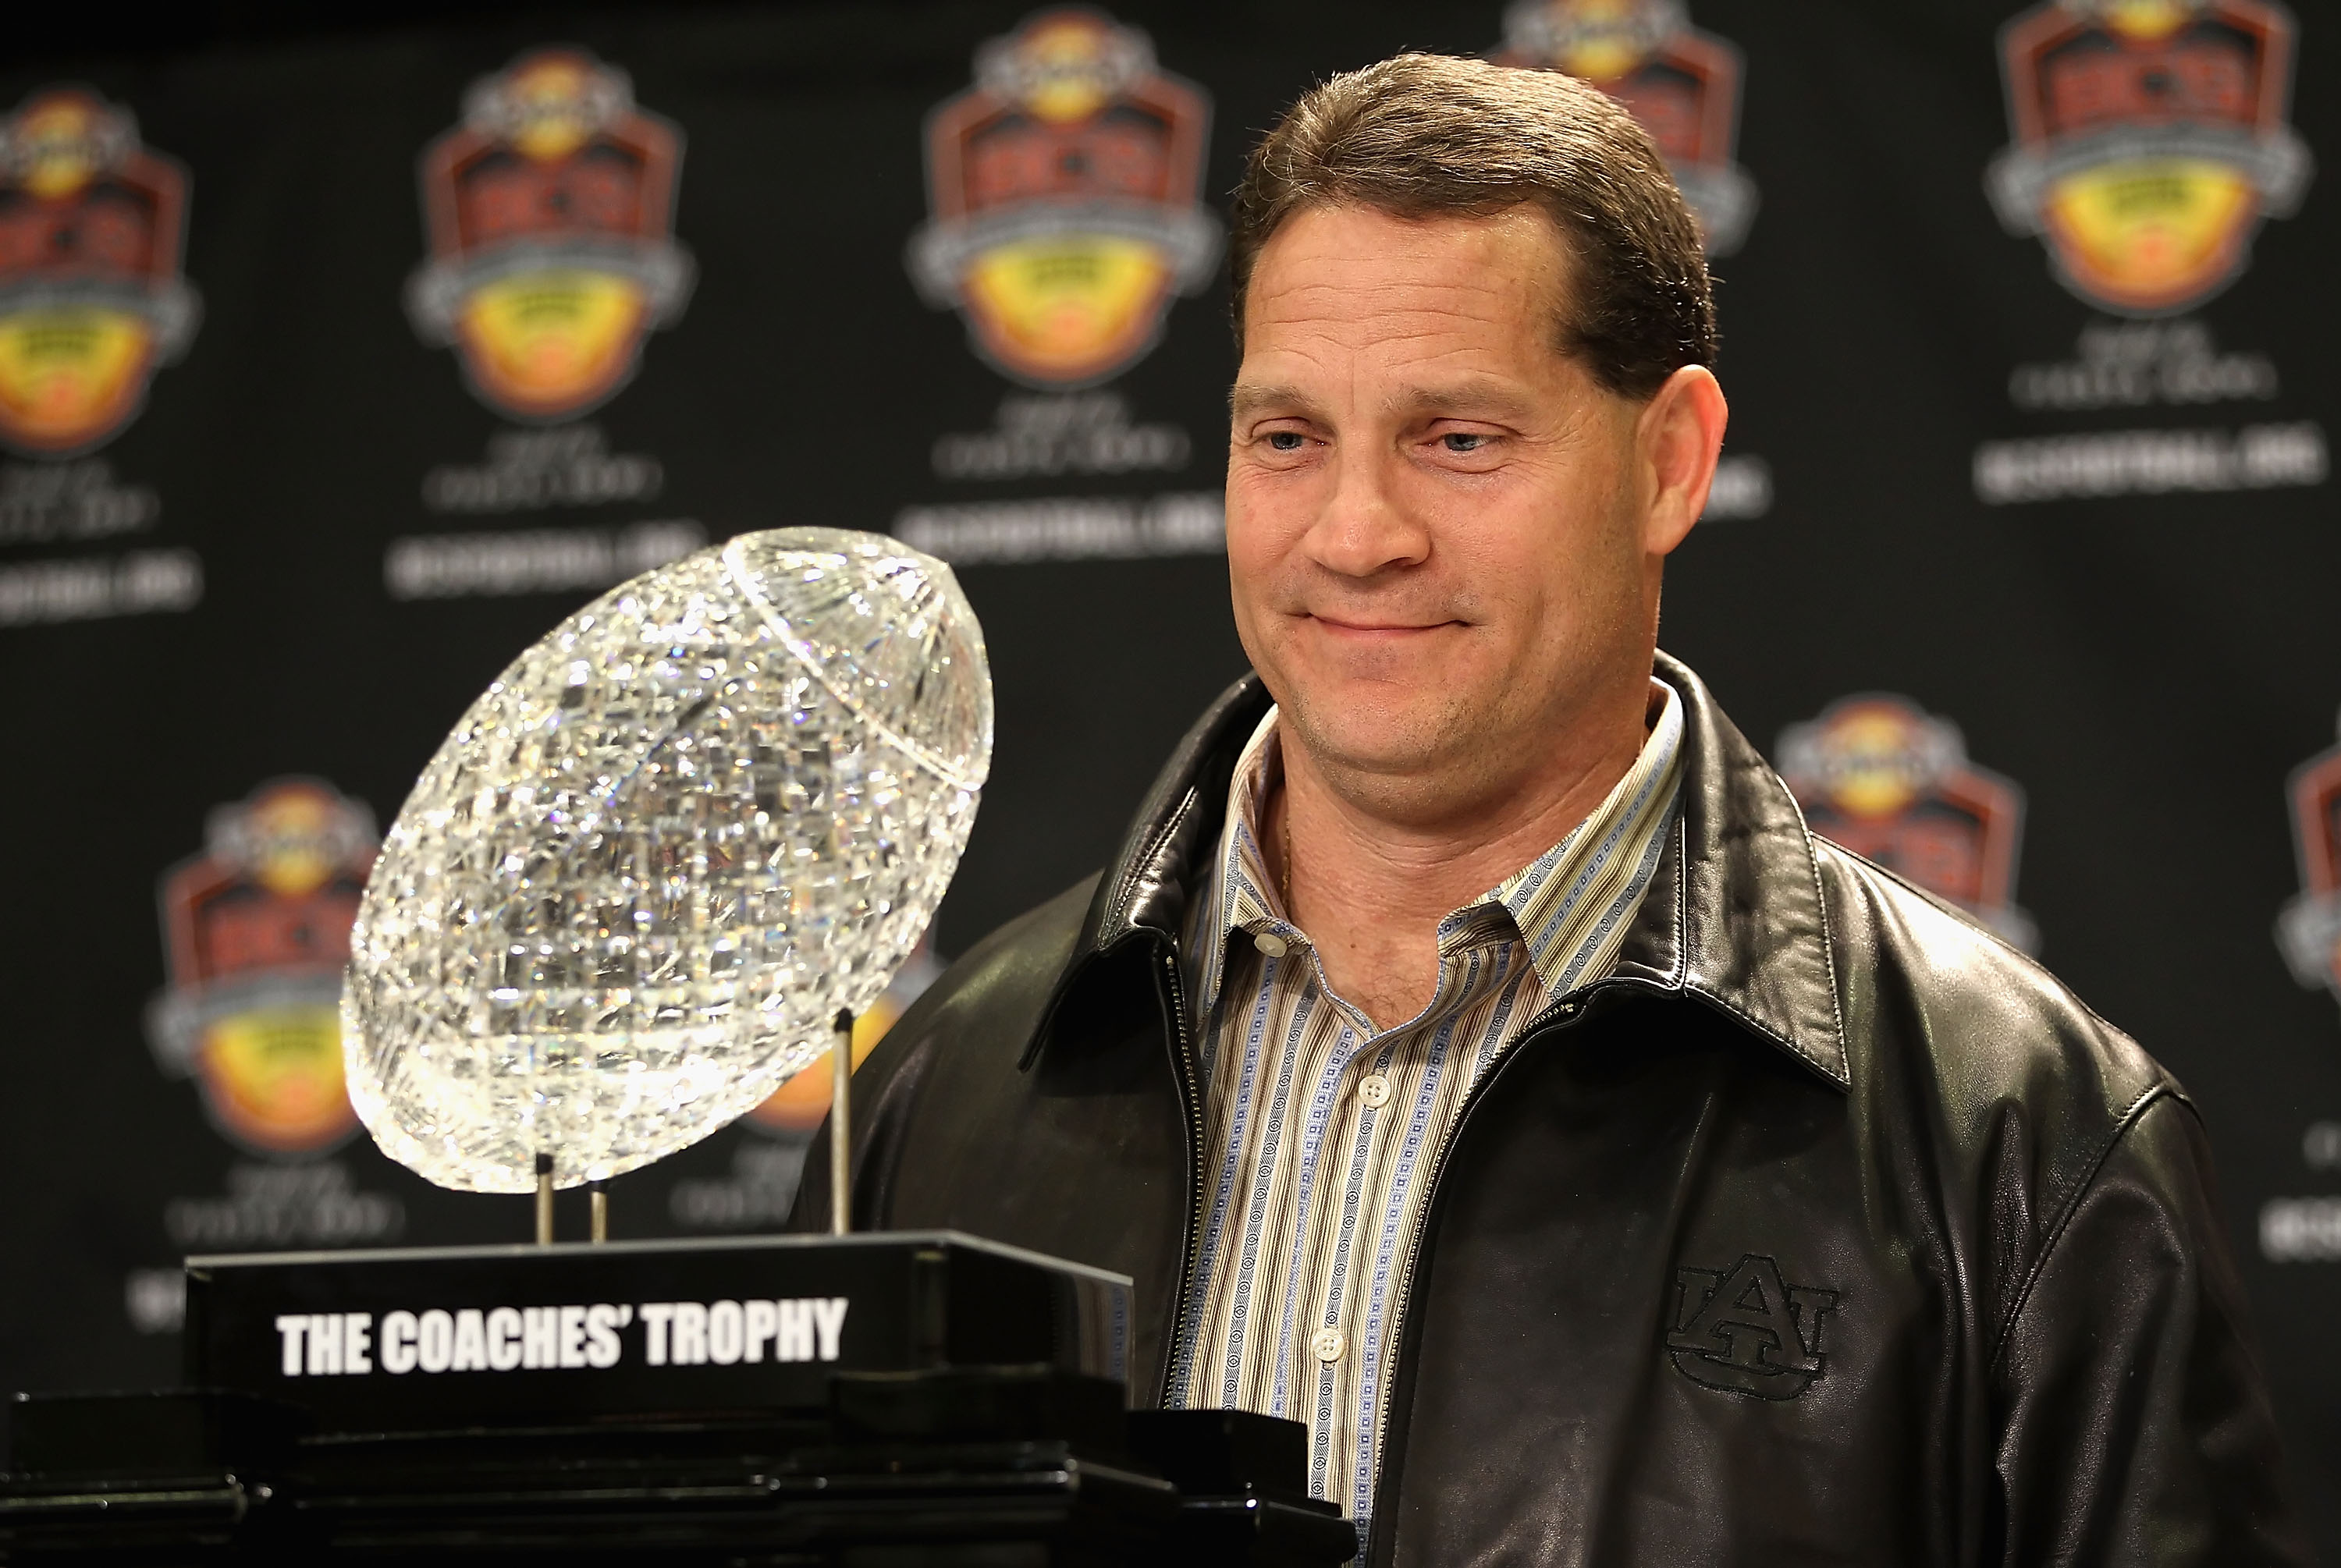 SCOTTSDALE, AZ - JANUARY 11:  Head coach Gene Chizik of the Auburn Tigers poses with the Coaches trophys during a press conference for the Tostitos BCS National Championship Game at the JW Marriott Camelback Inn on January 11, 2011 in Scottsdale, Arizona.